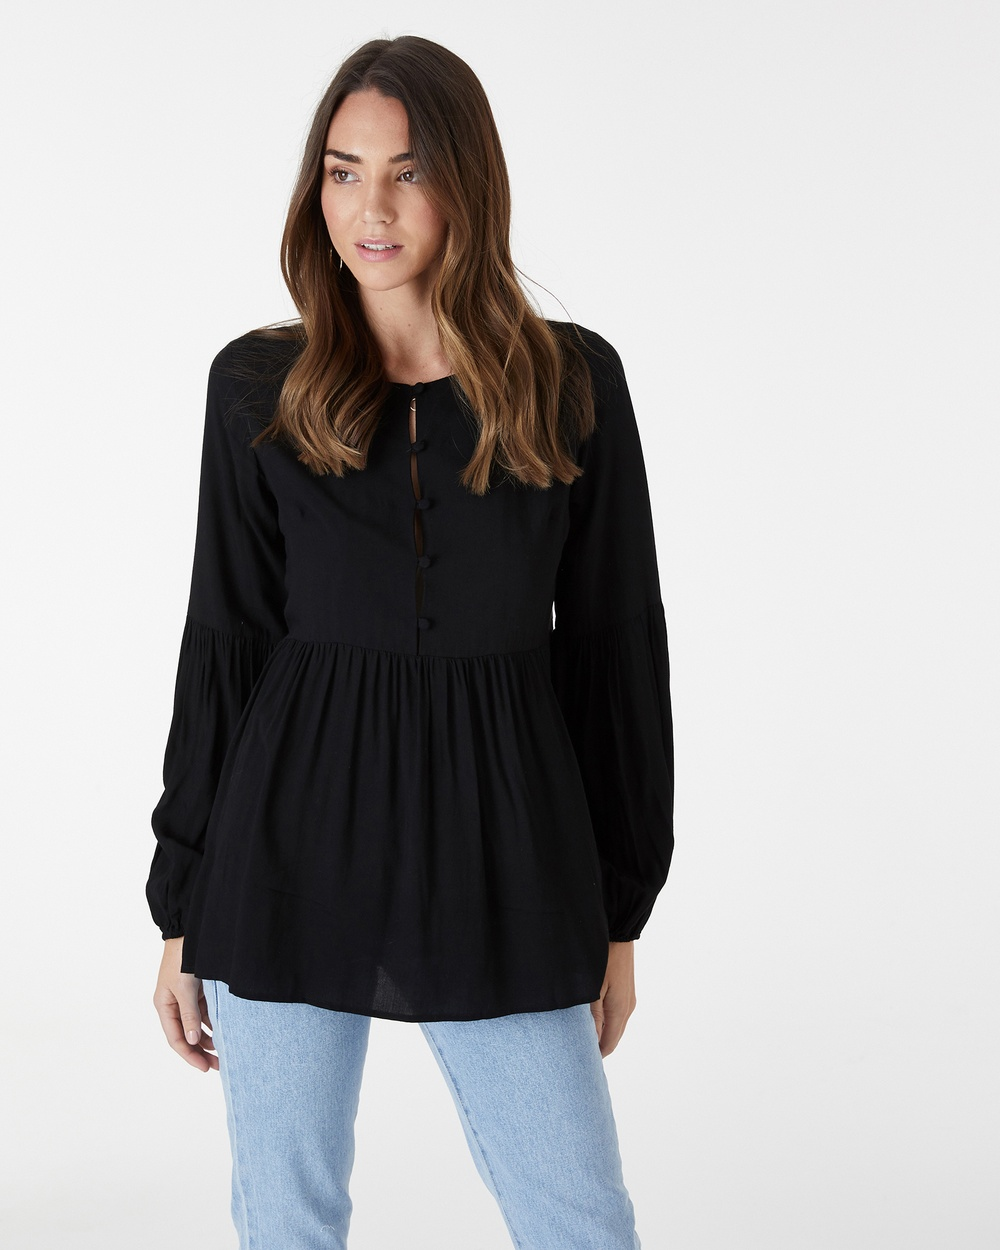 Everly Collective Rendezvous Top Tops Black Rendezvous Top